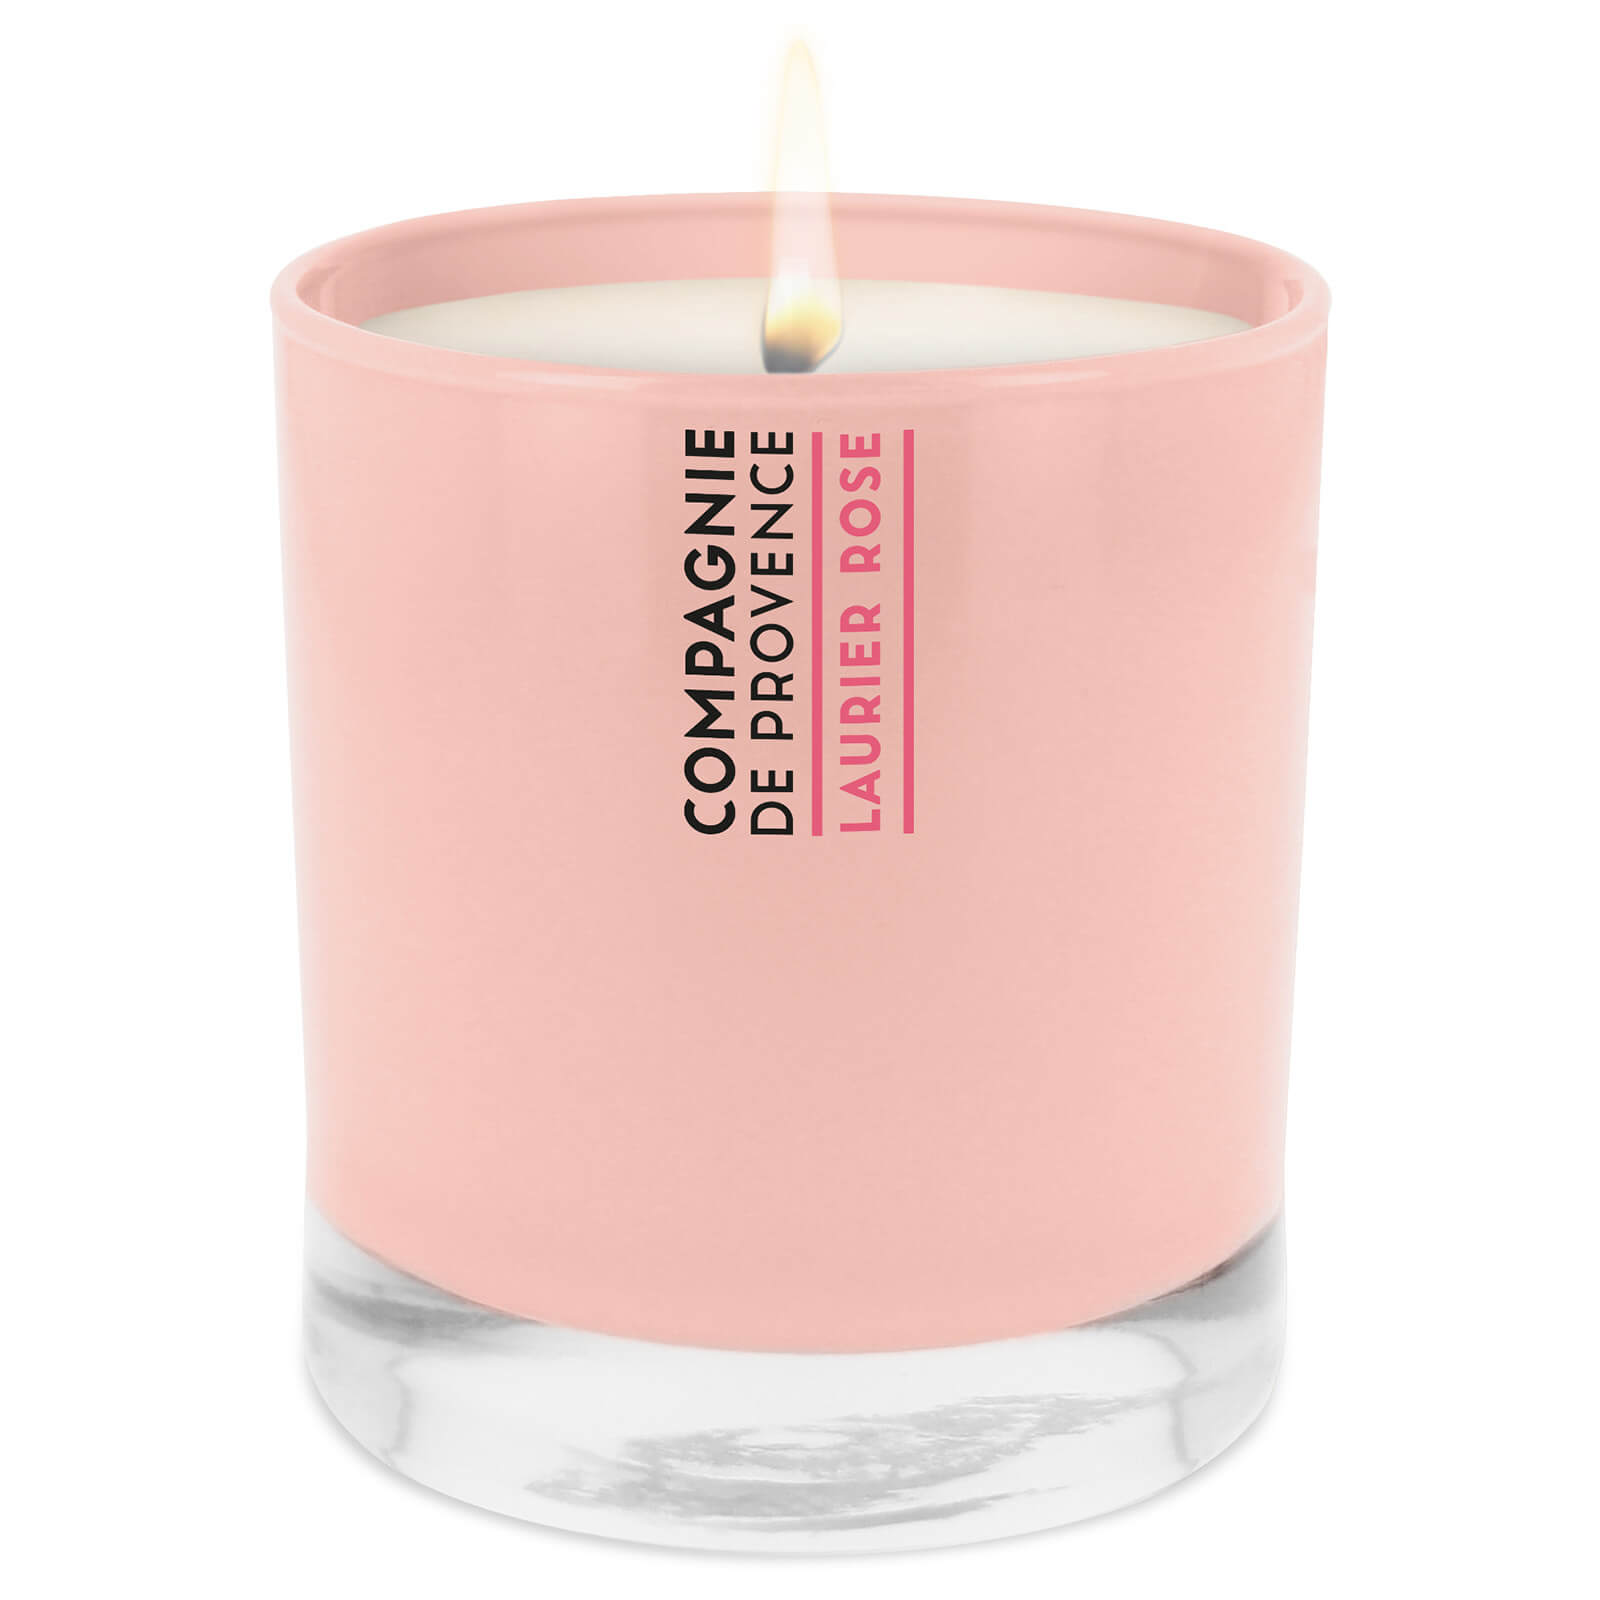 Compagnie de Provence Rose Bay Scented Candle 260g